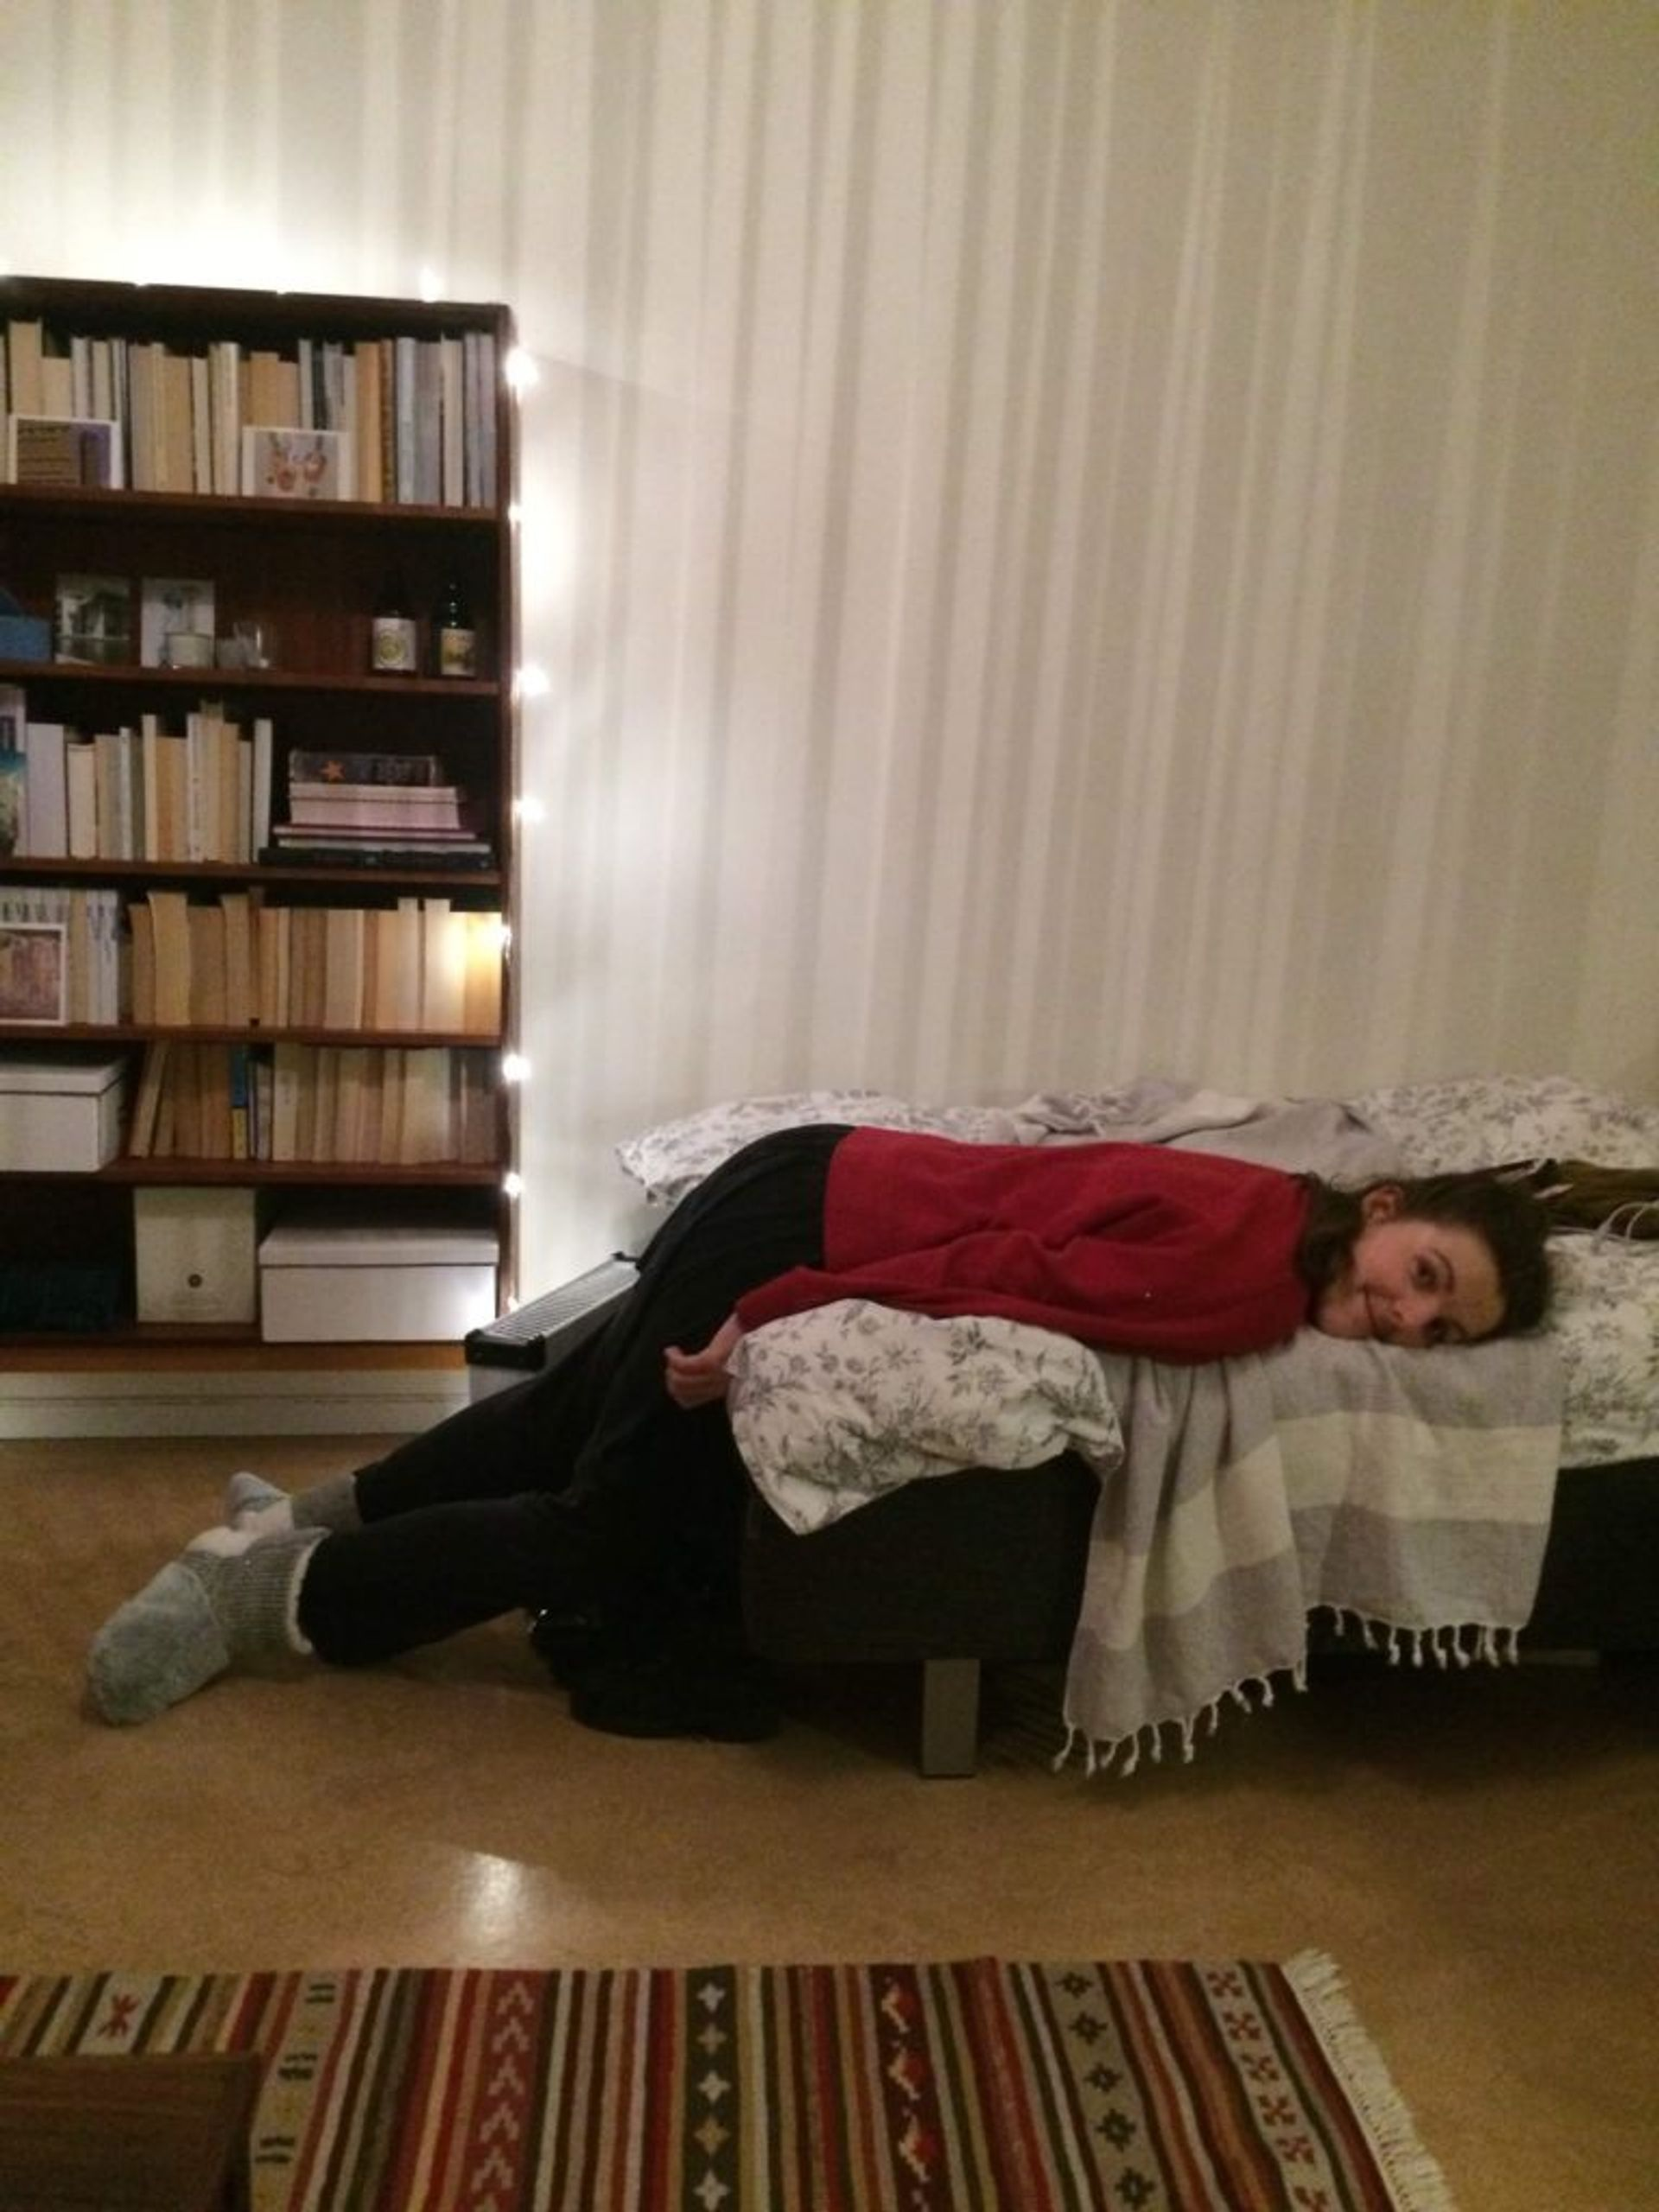 A student lying on a bed.